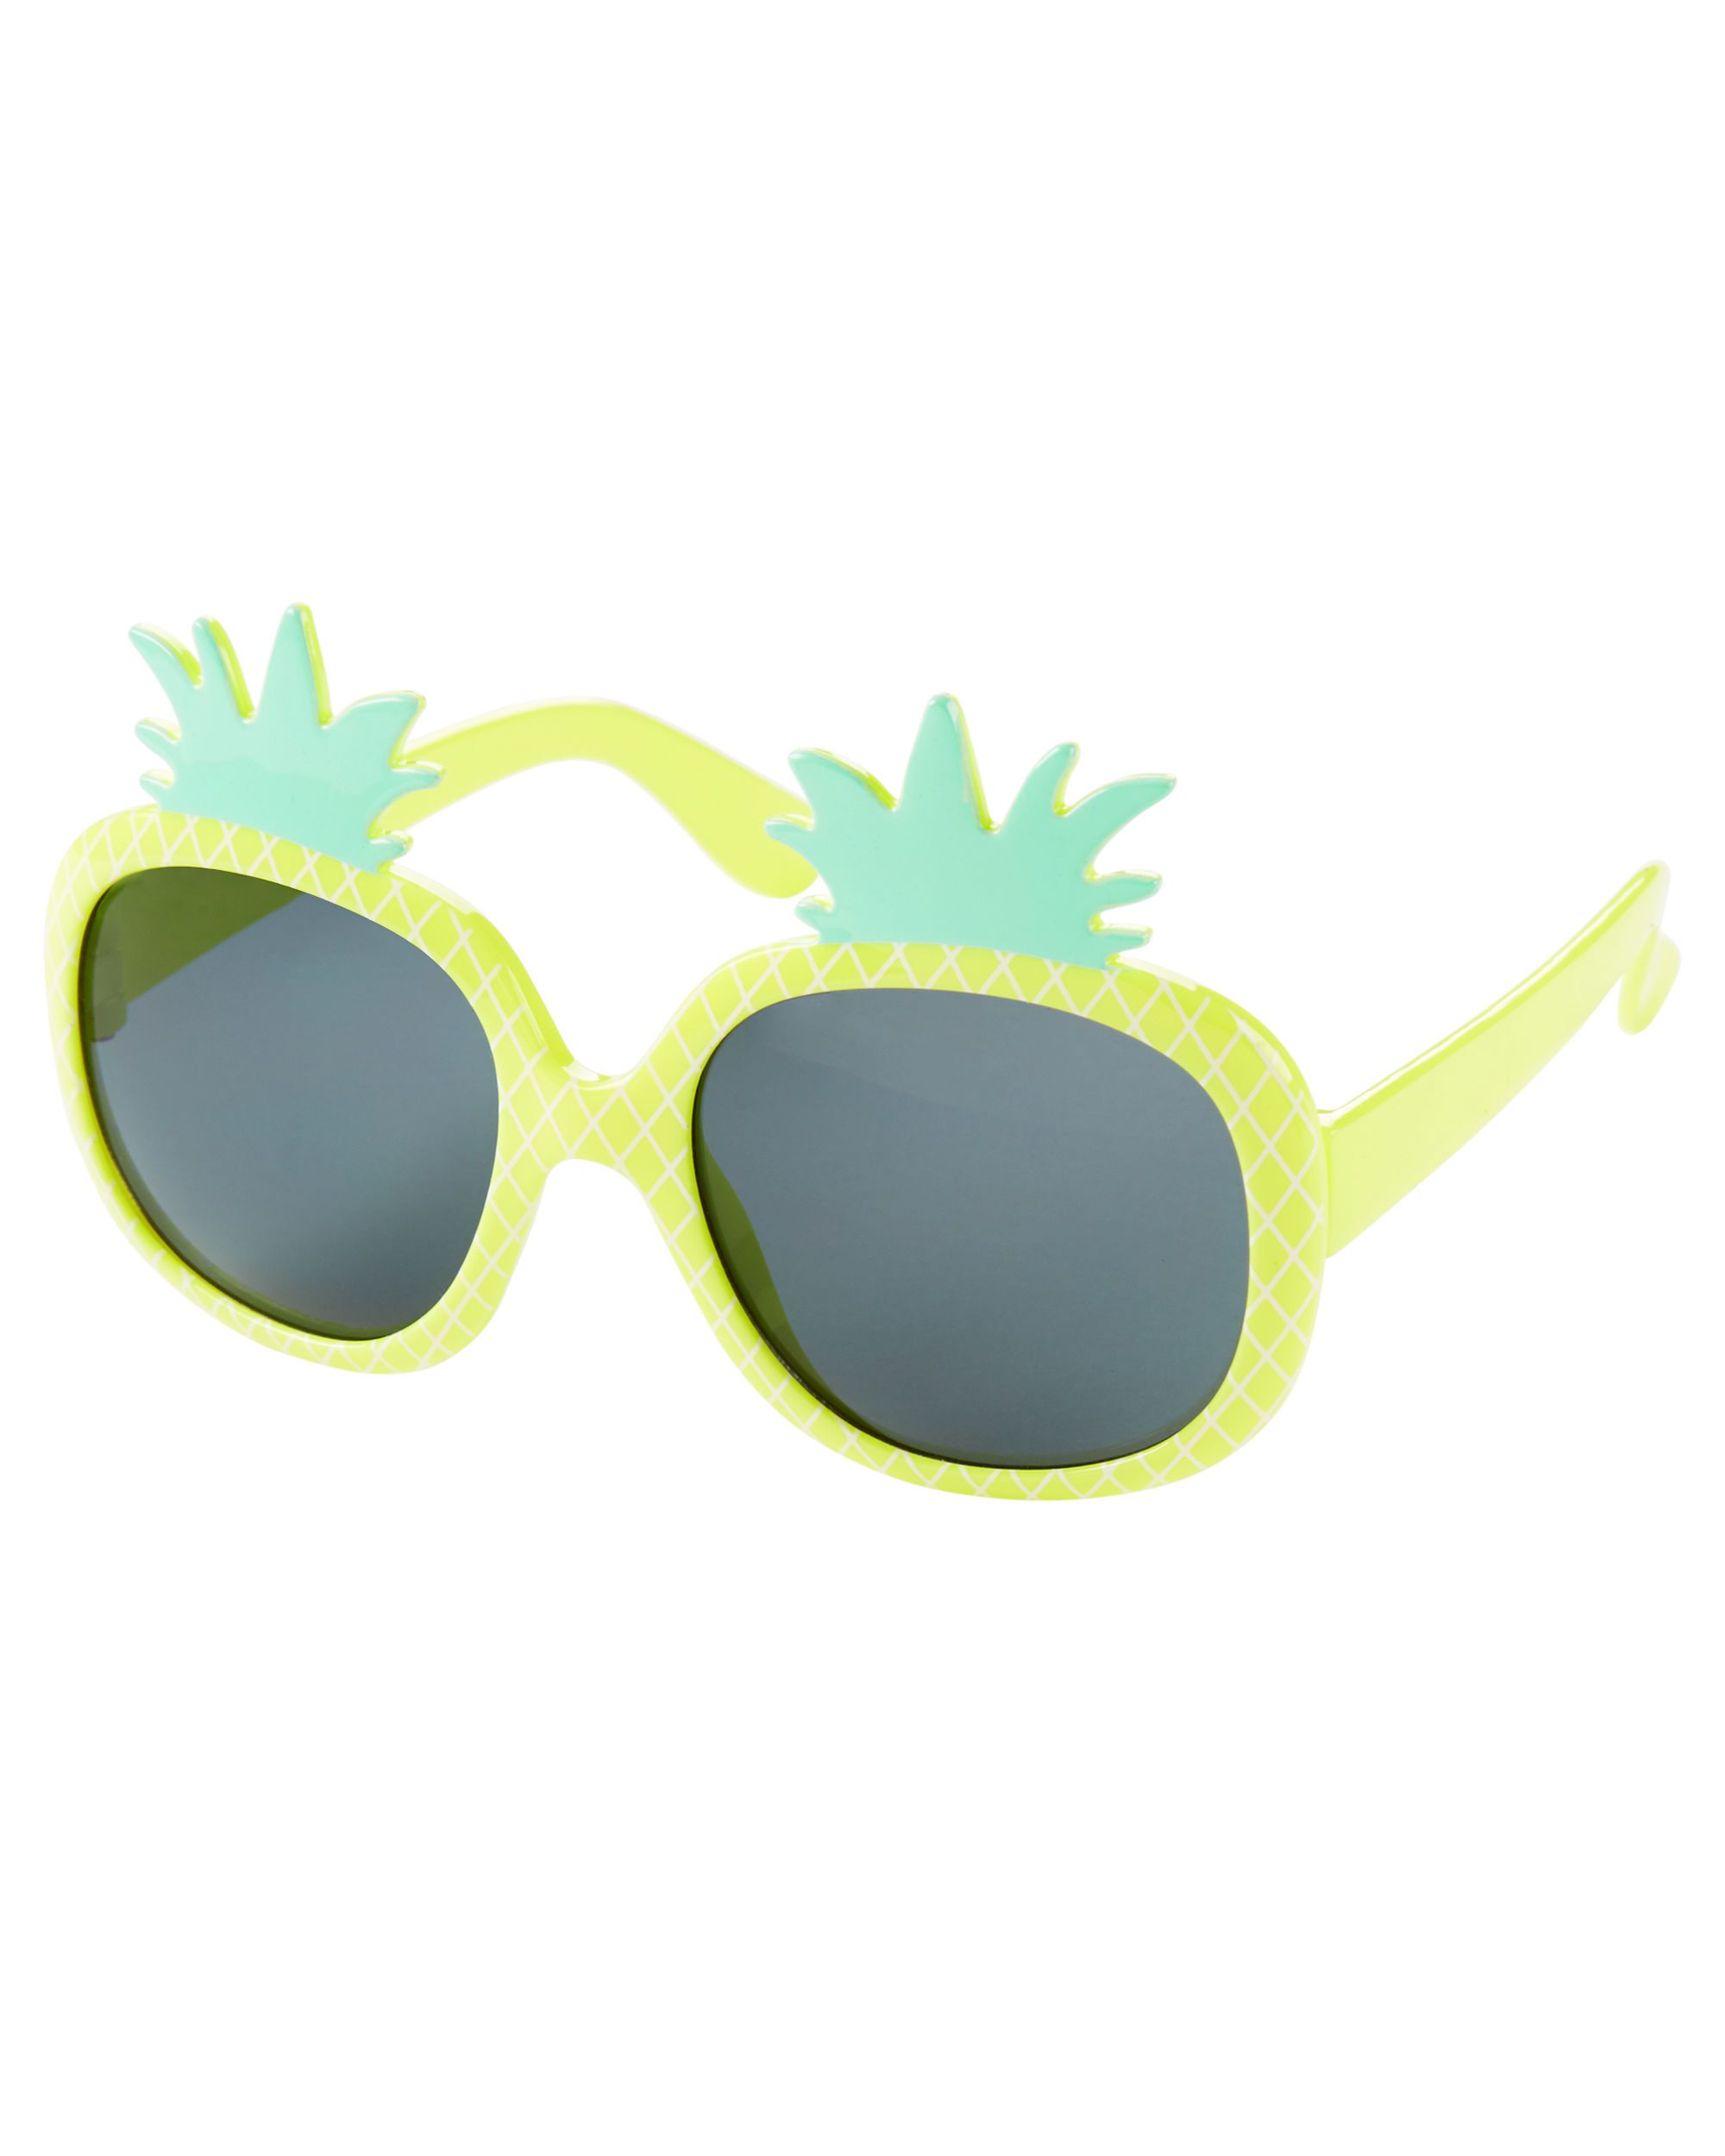 532c0720c2745 Pineapple Sunglasses | Clothes for Tristan | Girl with sunglasses ...